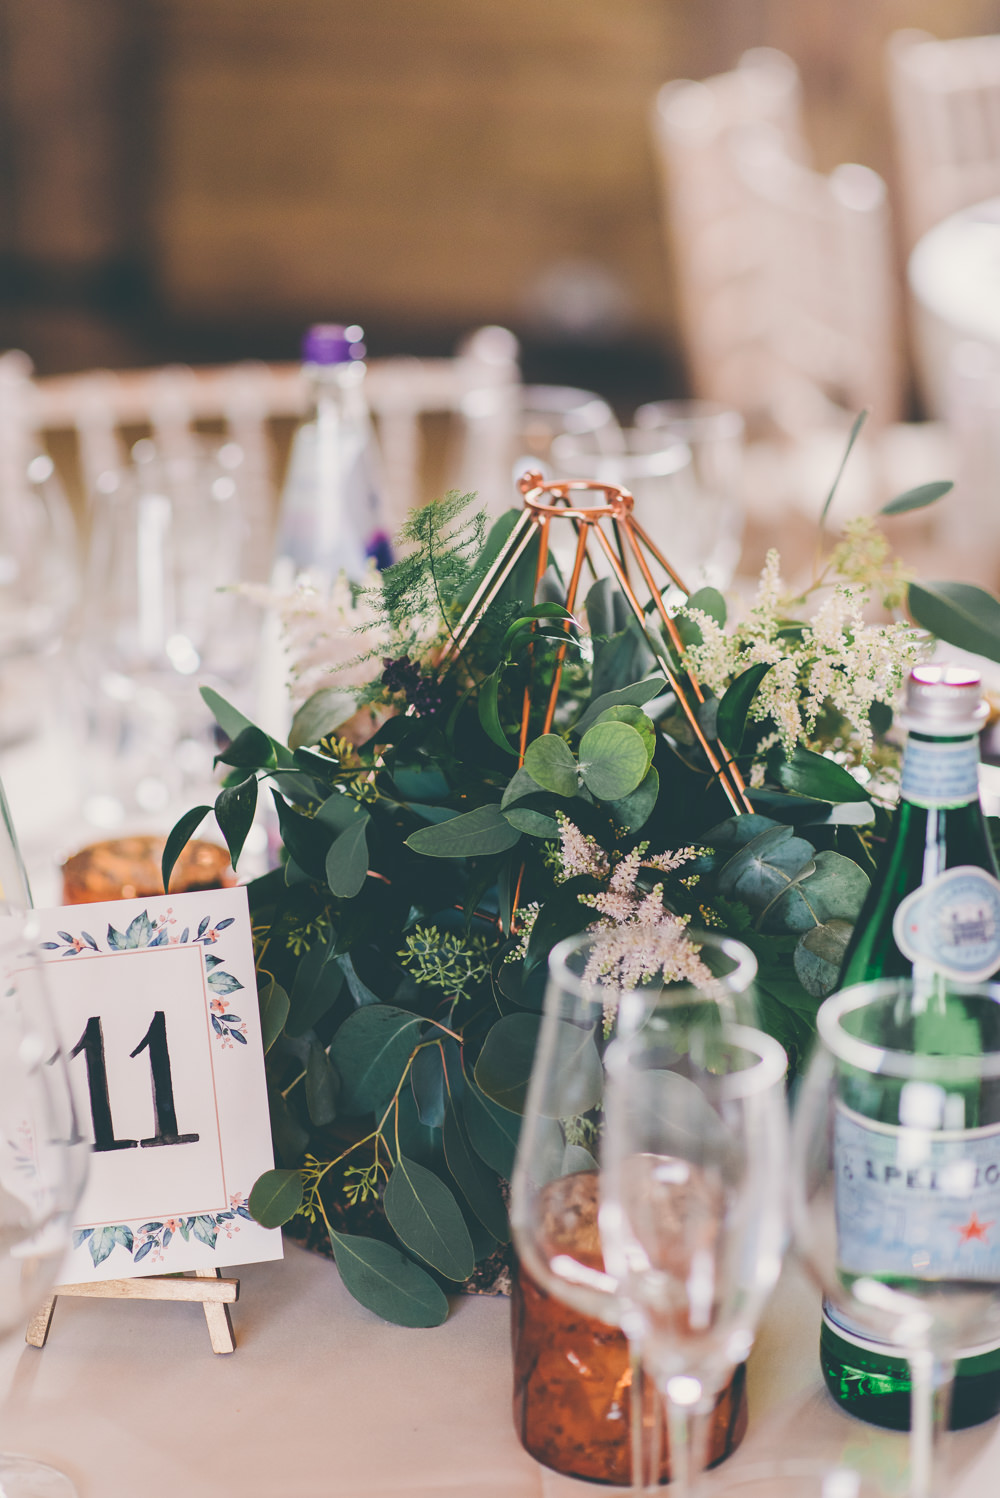 Terrarium Centrepiece Decor Flowers High Billinghurst Farm Wedding Larissa Joice Photography